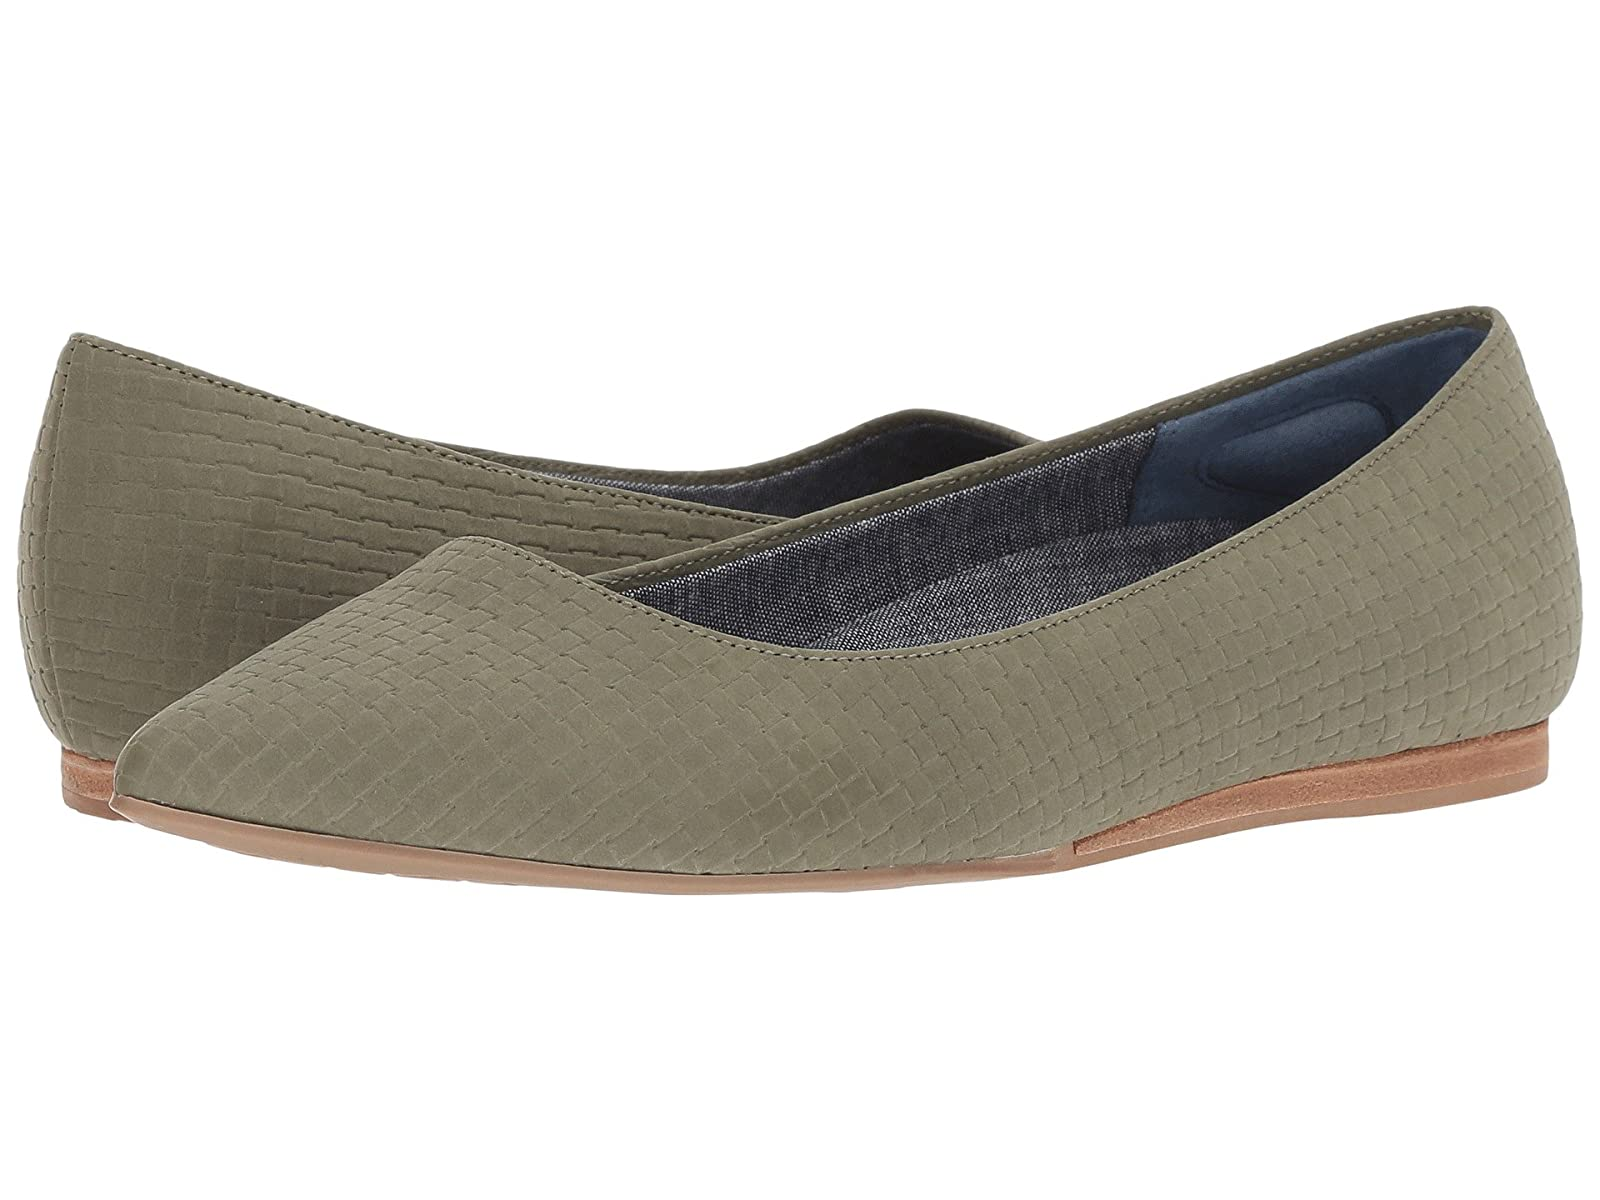 Dr. Scholl's LeaderAtmospheric grades have affordable shoes